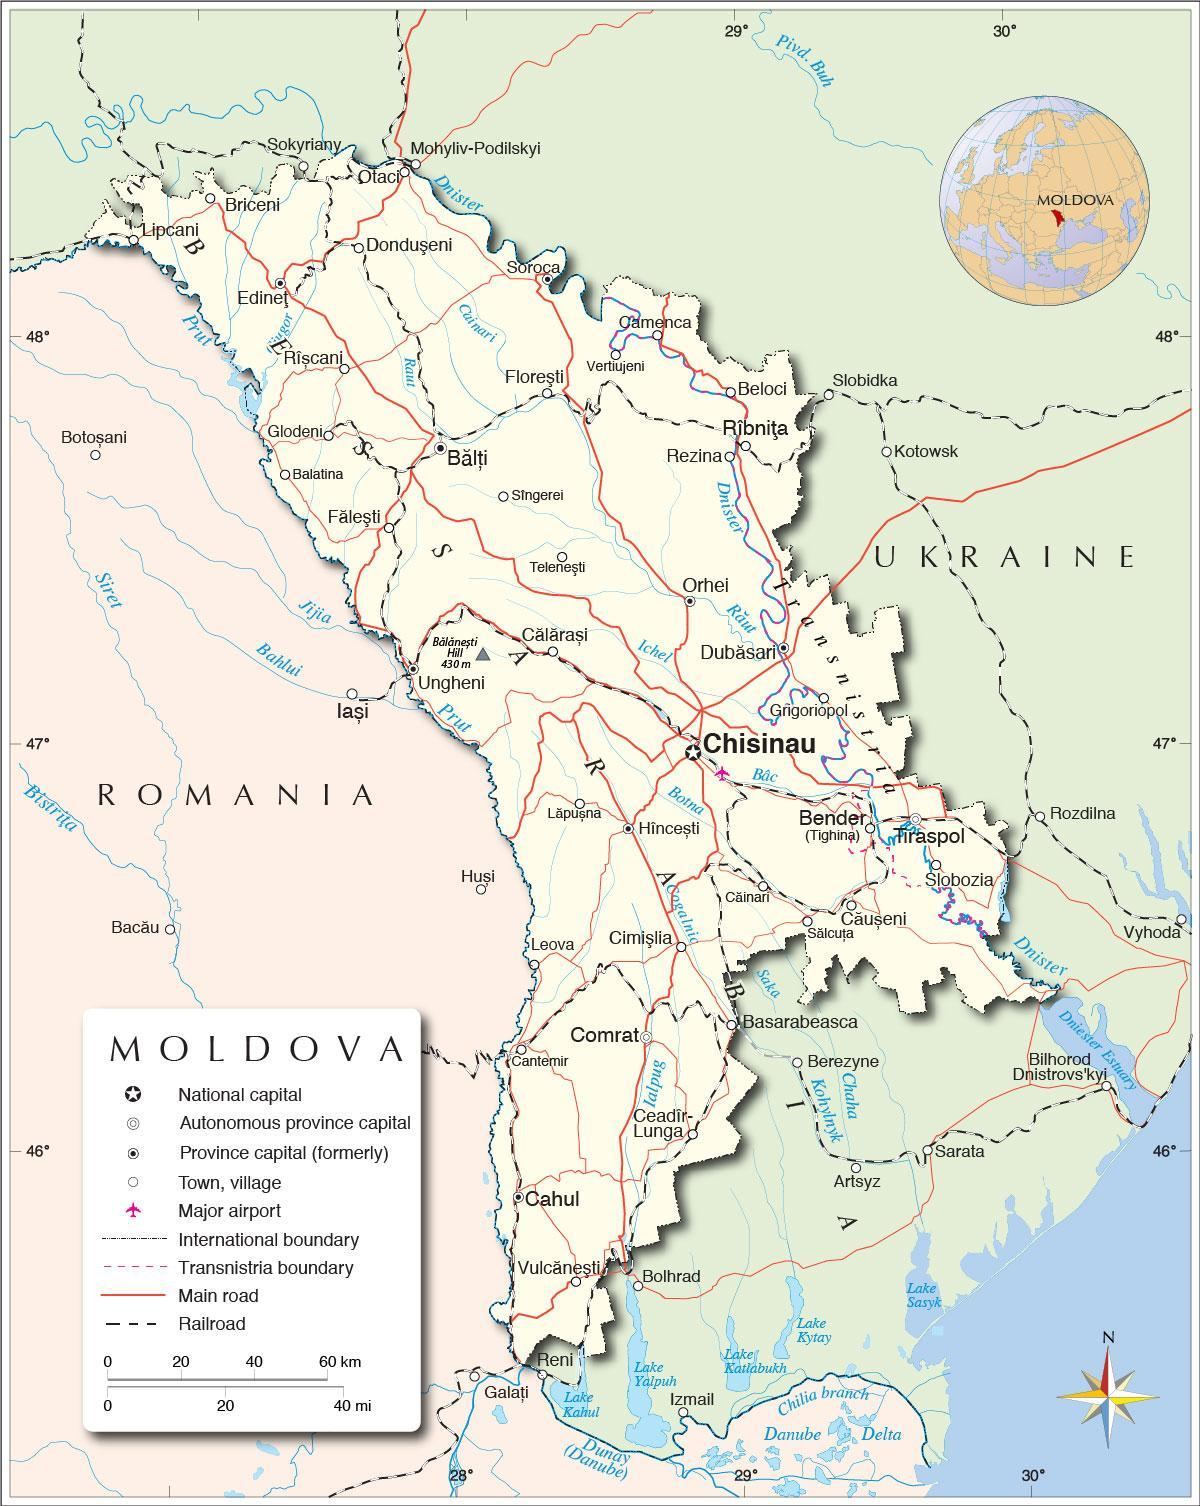 Map of republic of Moldova